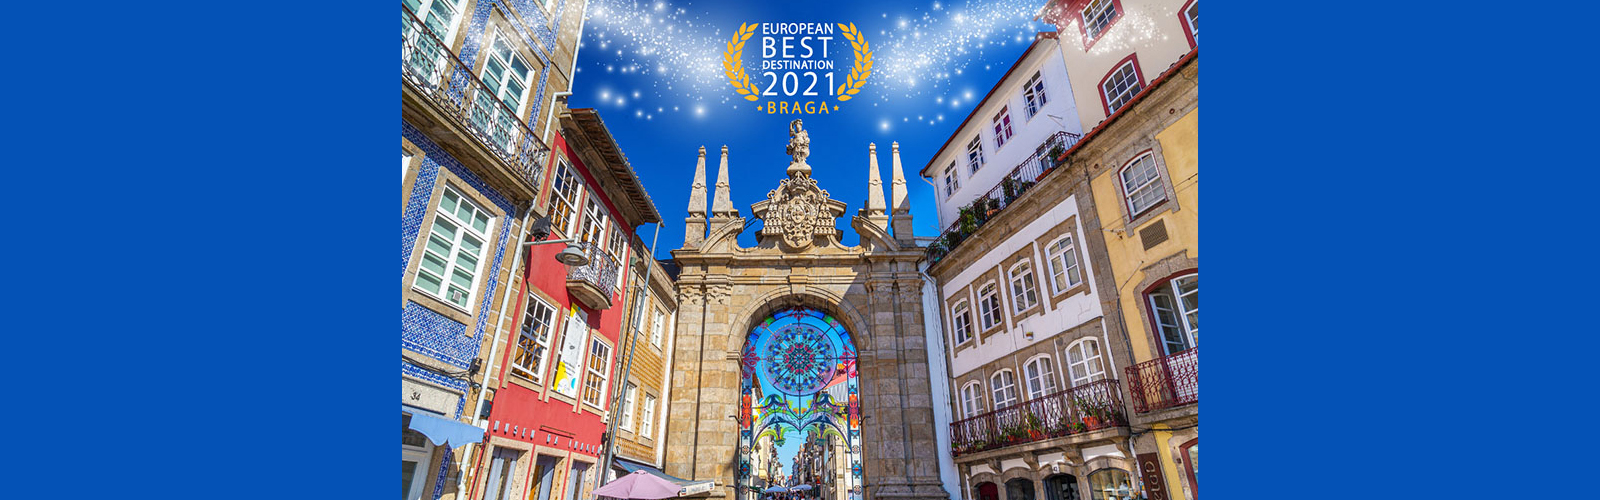 Braga European Best Destination 2021.